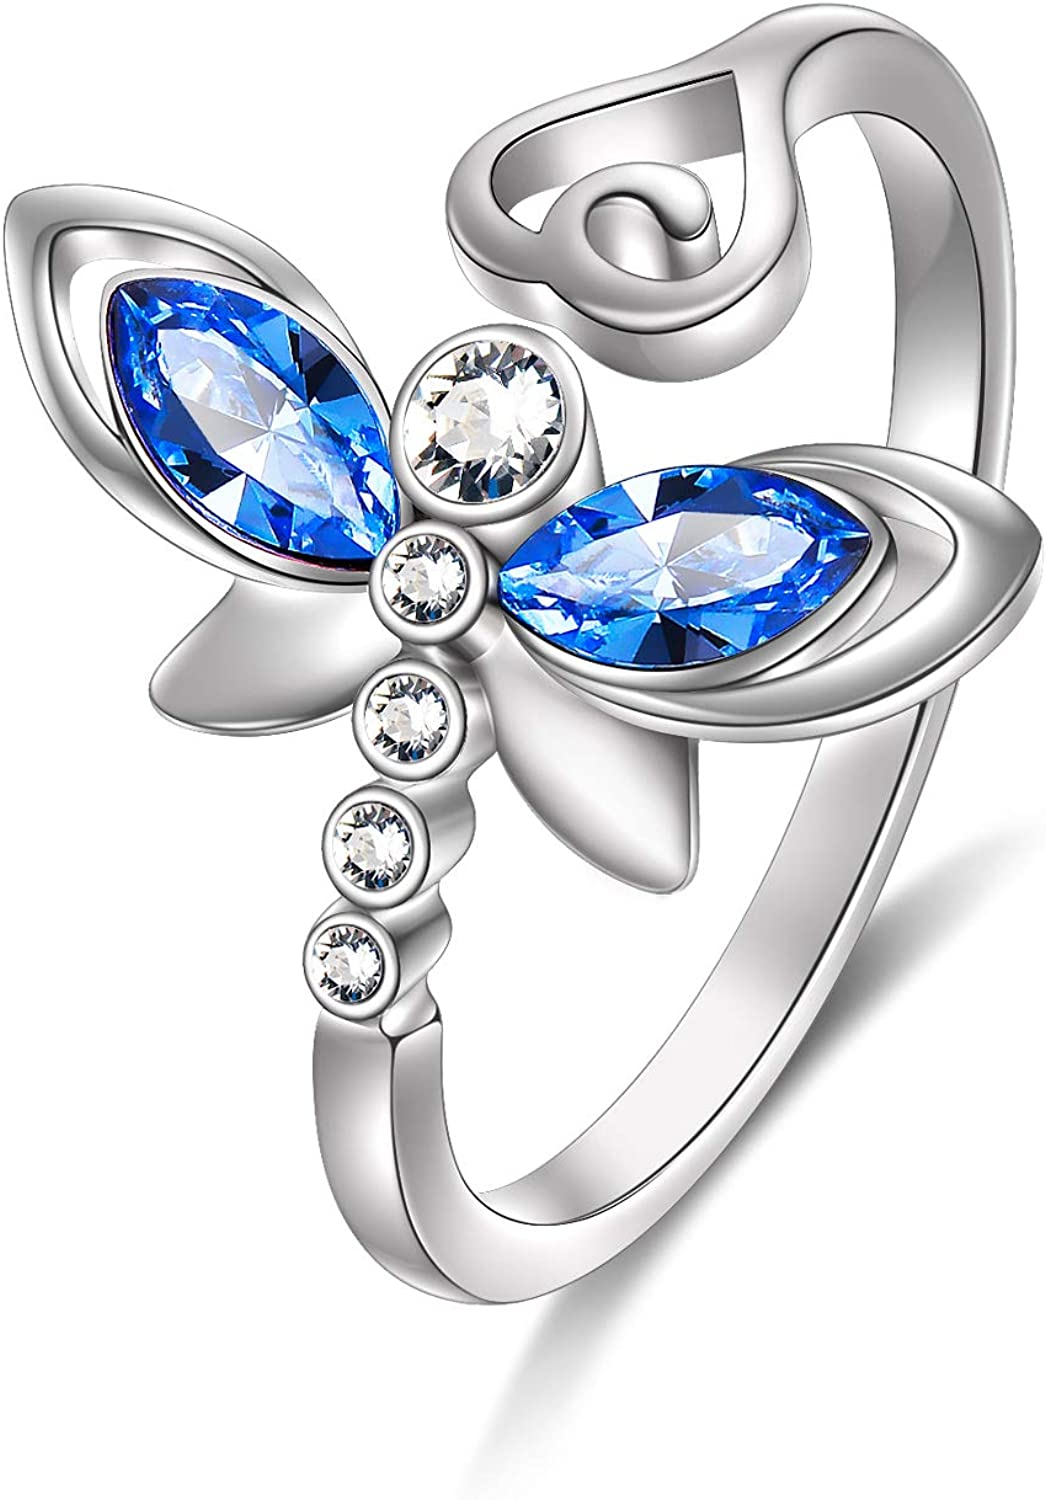 AOBOCO Sterling Silver Dragonfly Adjustable Open Ring, Crystals from Austria, Adorable Insects in My Little Garden Series, Fine Jewelry Gifts for Women